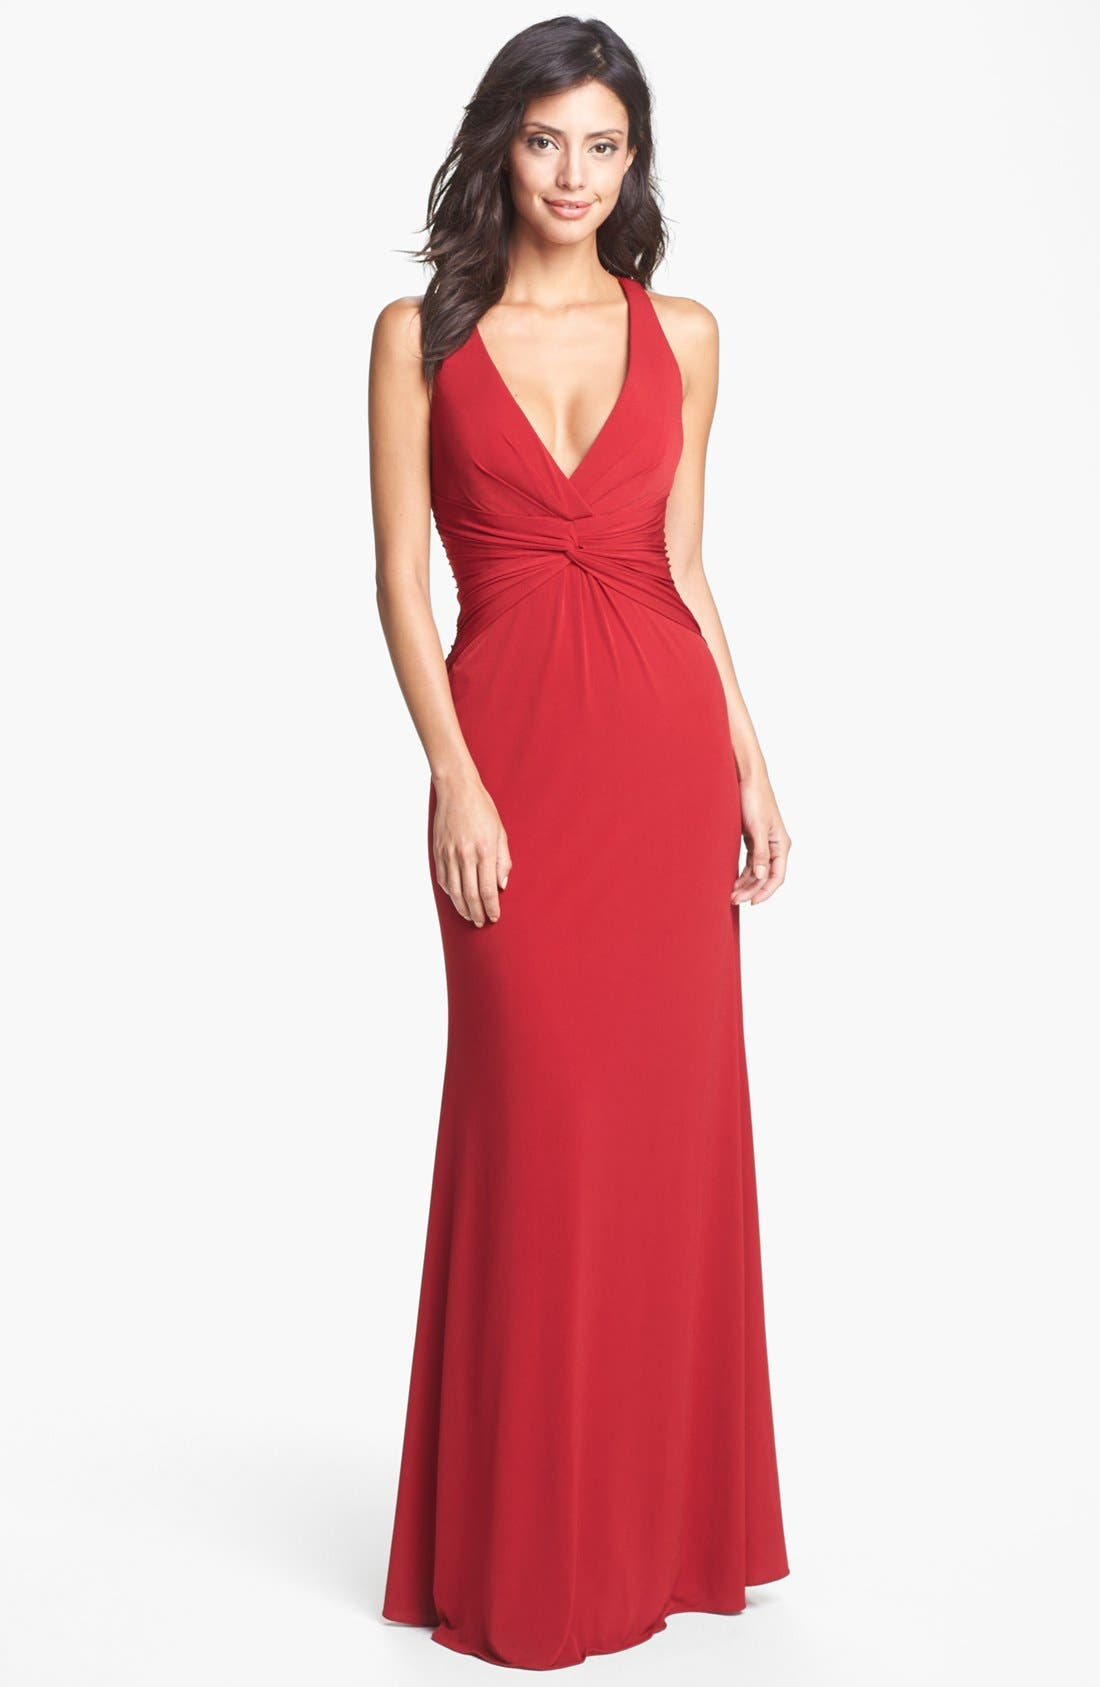 Alternate Image 1 Selected - Laundry by Shelli Segal Knotted Jersey Cross Back Gown